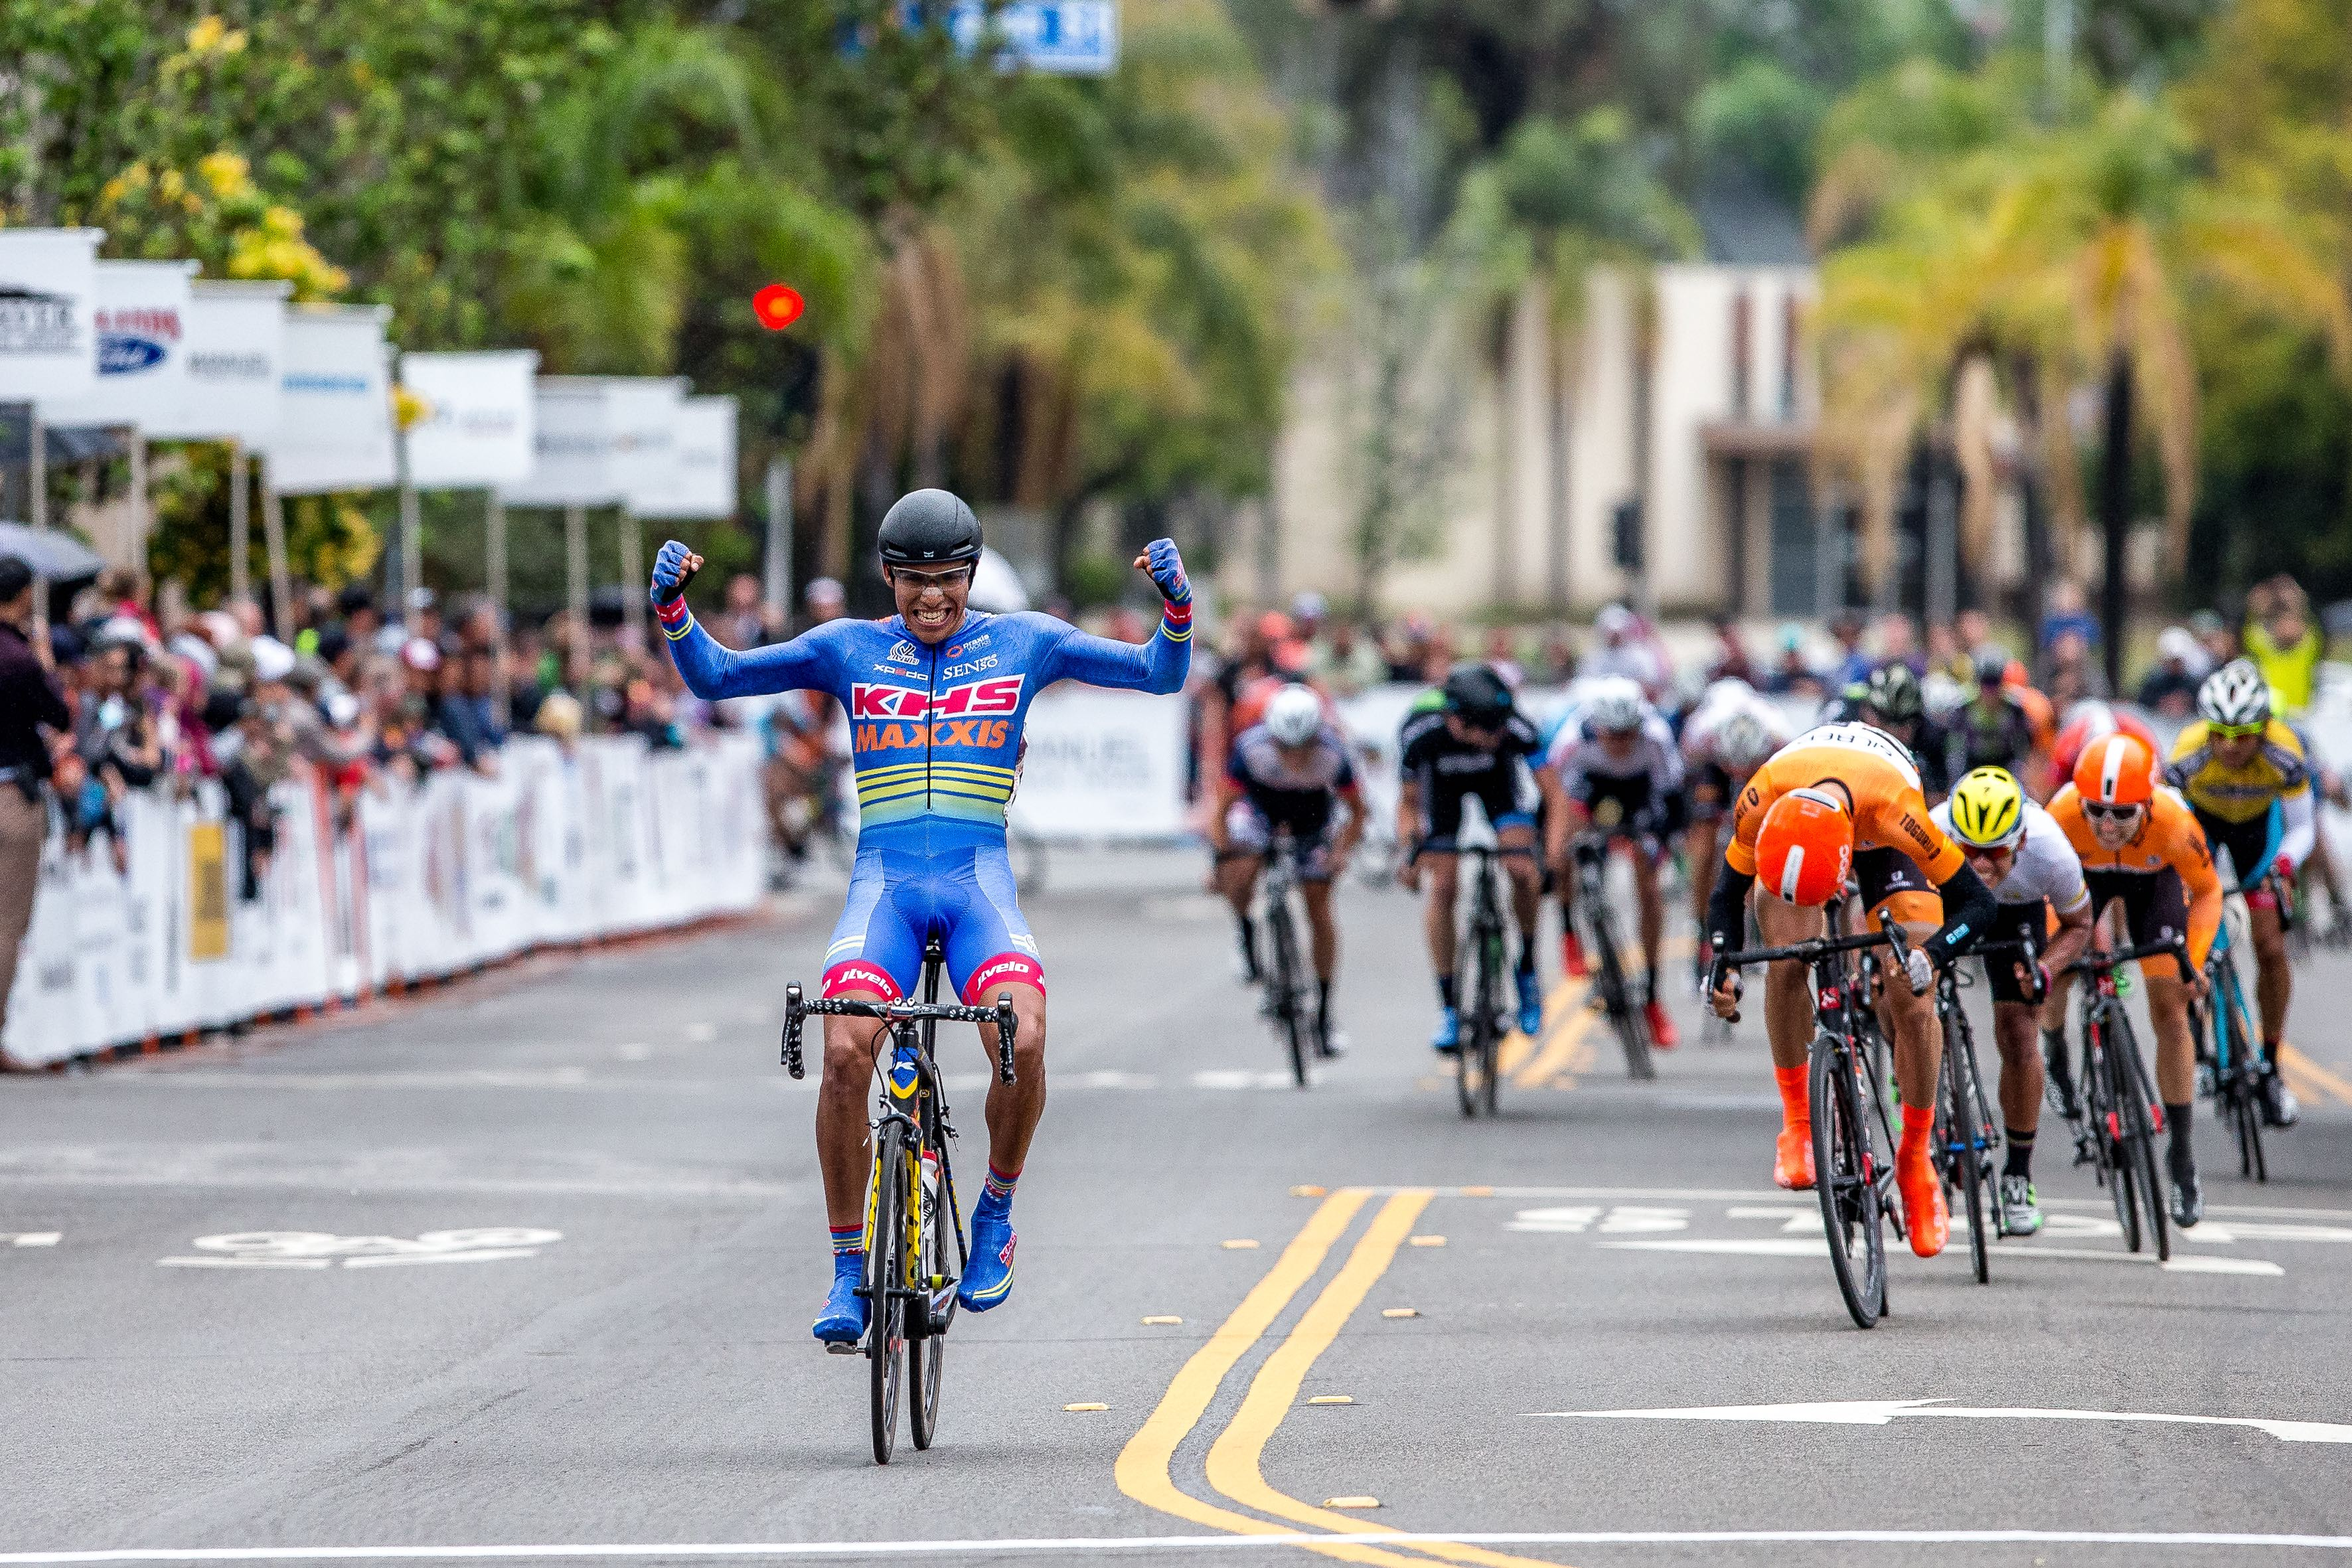 Ulises Castillo, KHS Maxis JLVelo winning Stage 4 2016 Redlands Bicycle Classic Criterium / Photo Credit http://www.dmunsonphoto.com /